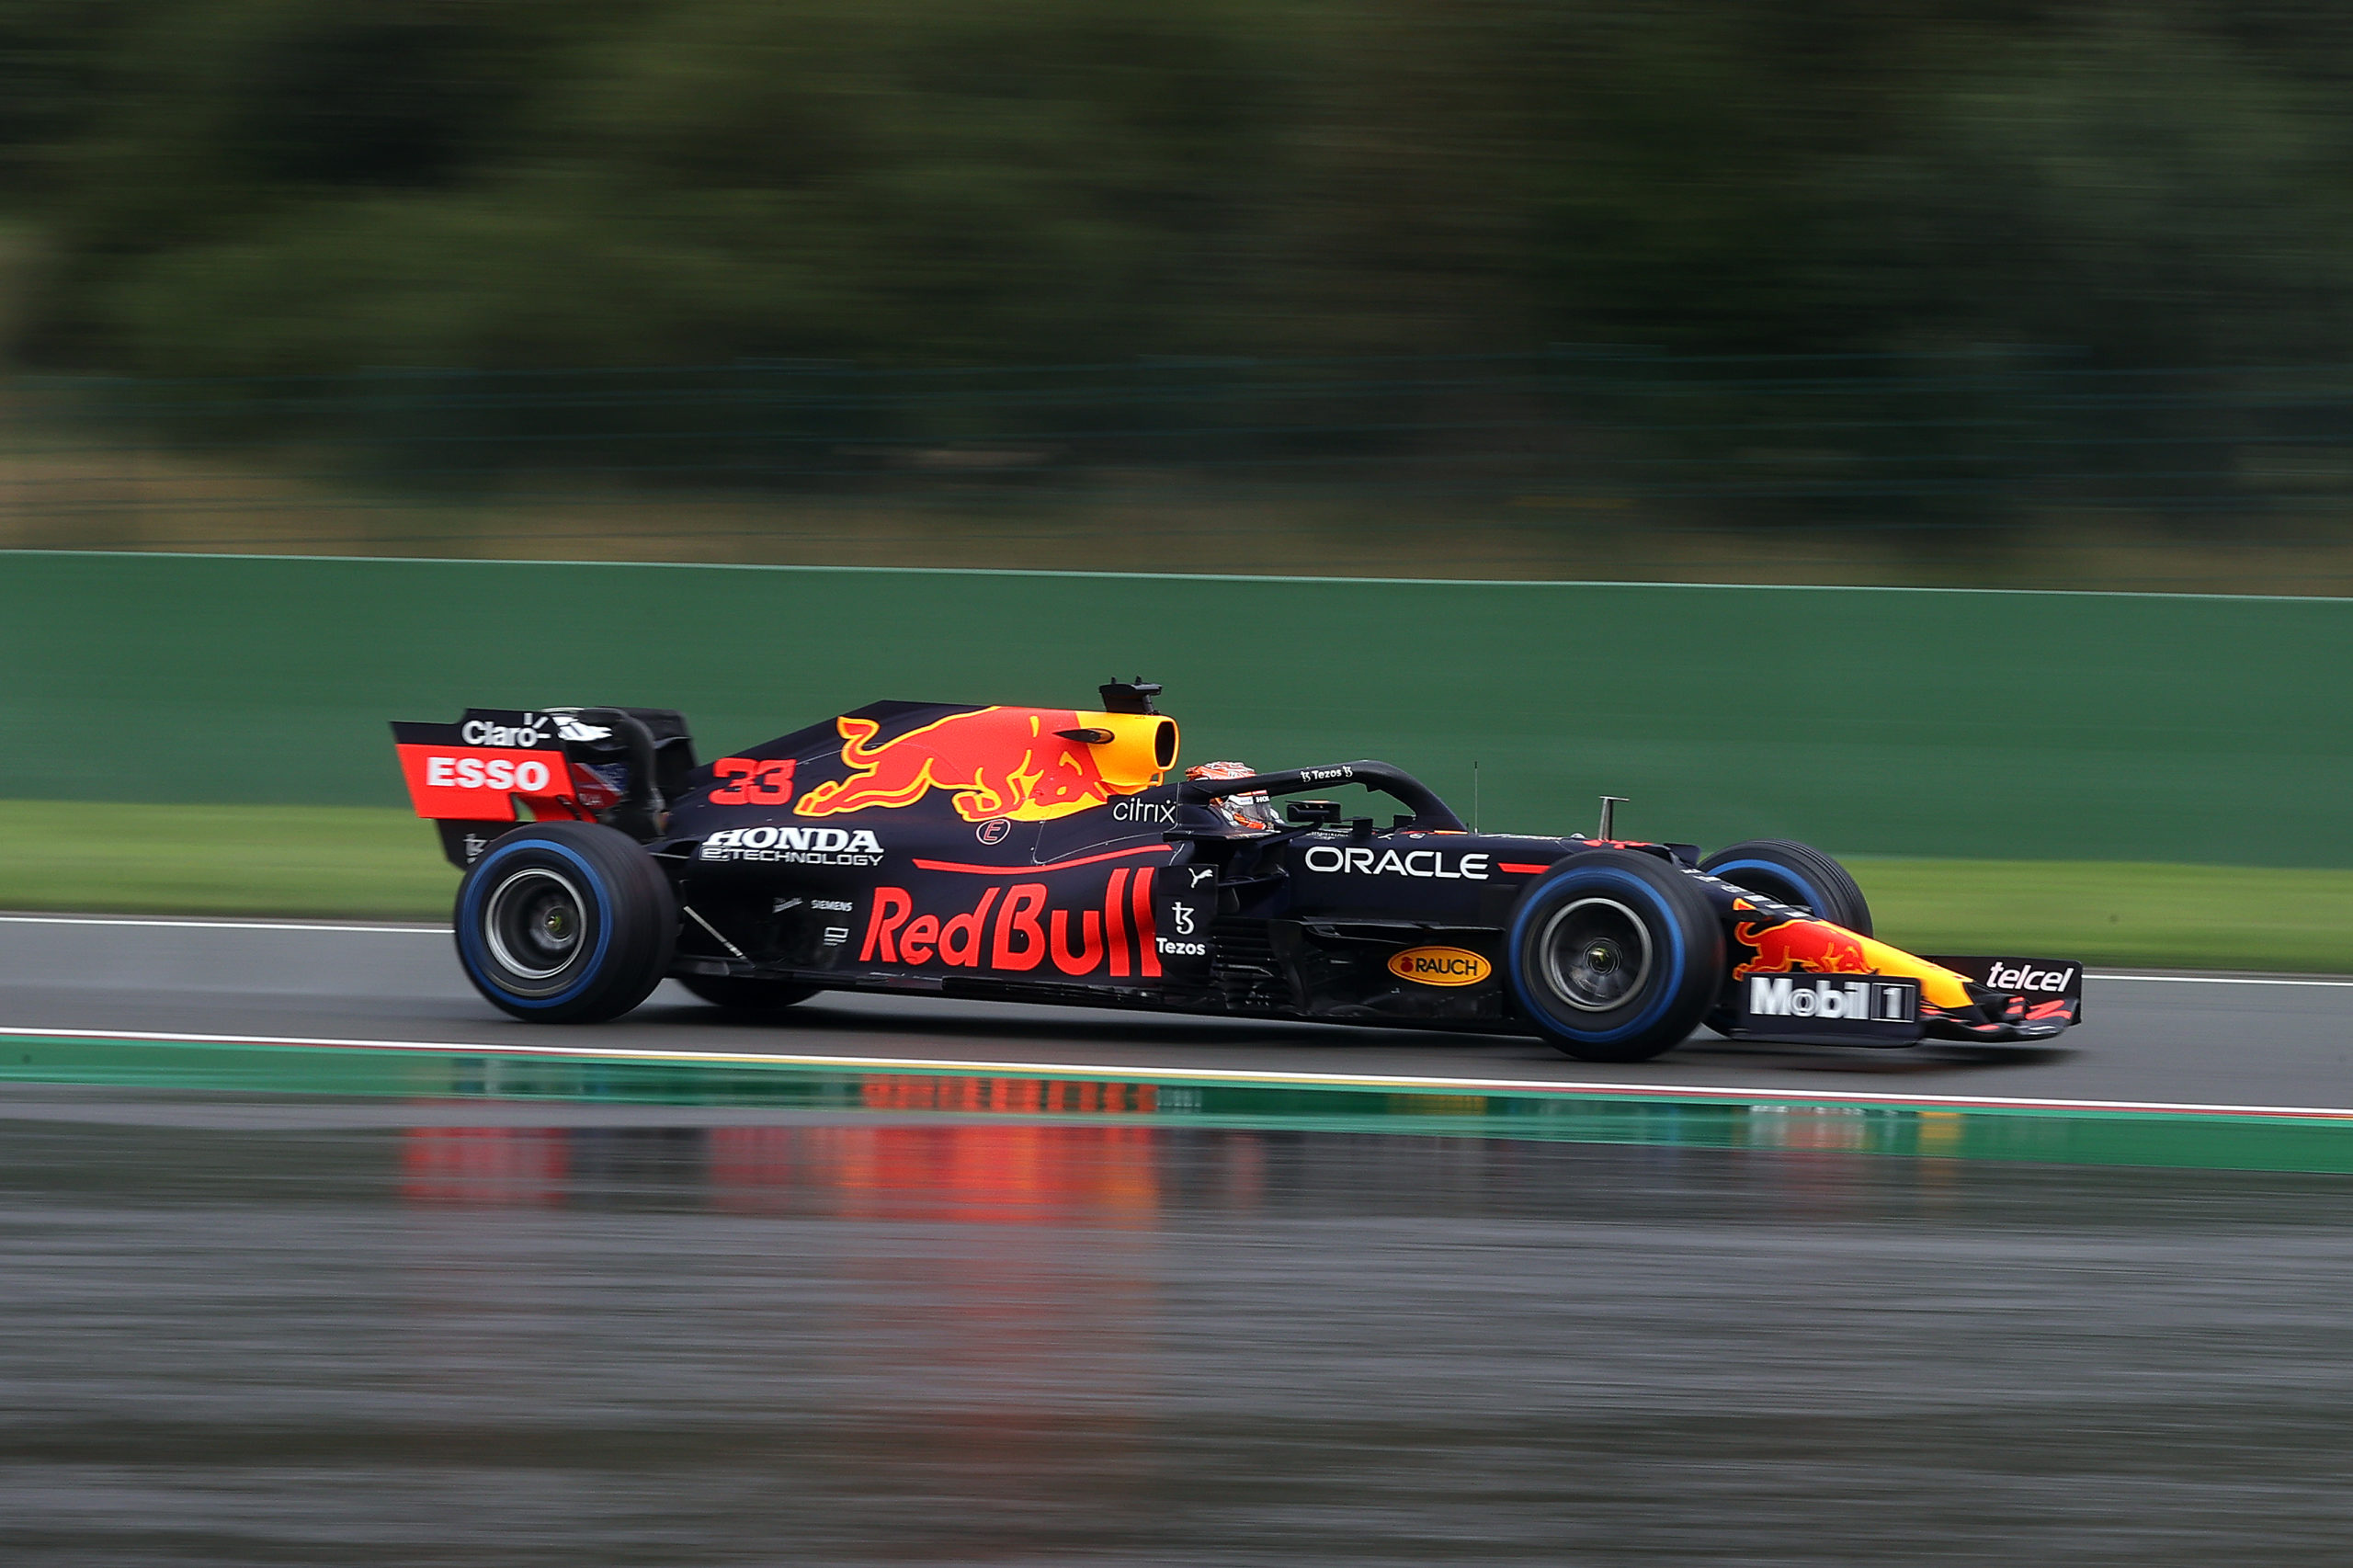 SPA, BELGIUM - AUGUST 28: Max Verstappen of the Netherlands driving the (33) Red Bull Racing RB16B Honda during qualifying ahead of the F1 Grand Prix of Belgium at Circuit de Spa-Francorchamps on August 28, 2021 in Spa, Belgium. (Photo by Lars Baron/Getty Images) // Getty Images / Red Bull Content Pool  // SI202108280371 // Usage for editorial use only //